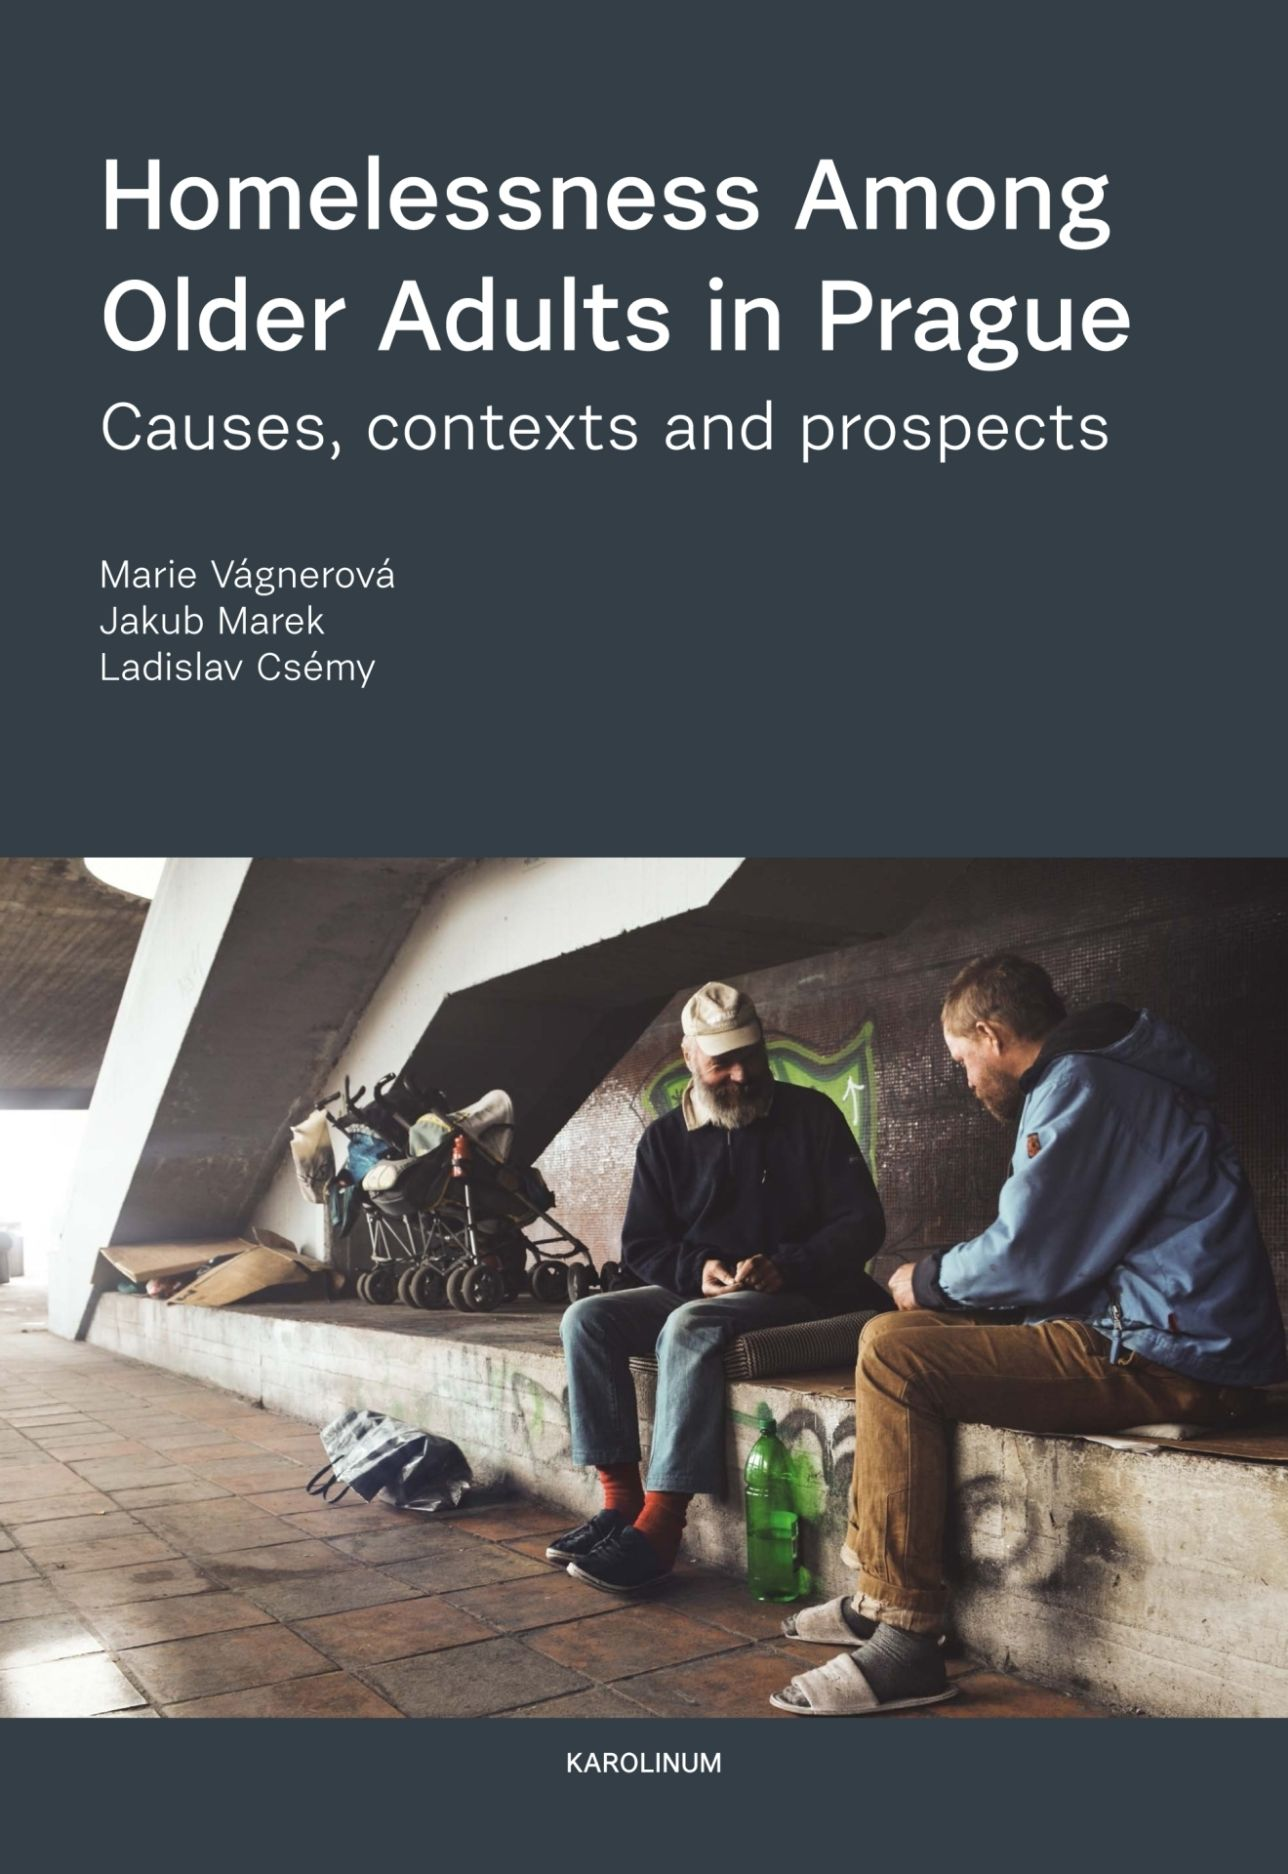 Homelessness among Older Adults in Prague: Causes, Contexts and Prospects